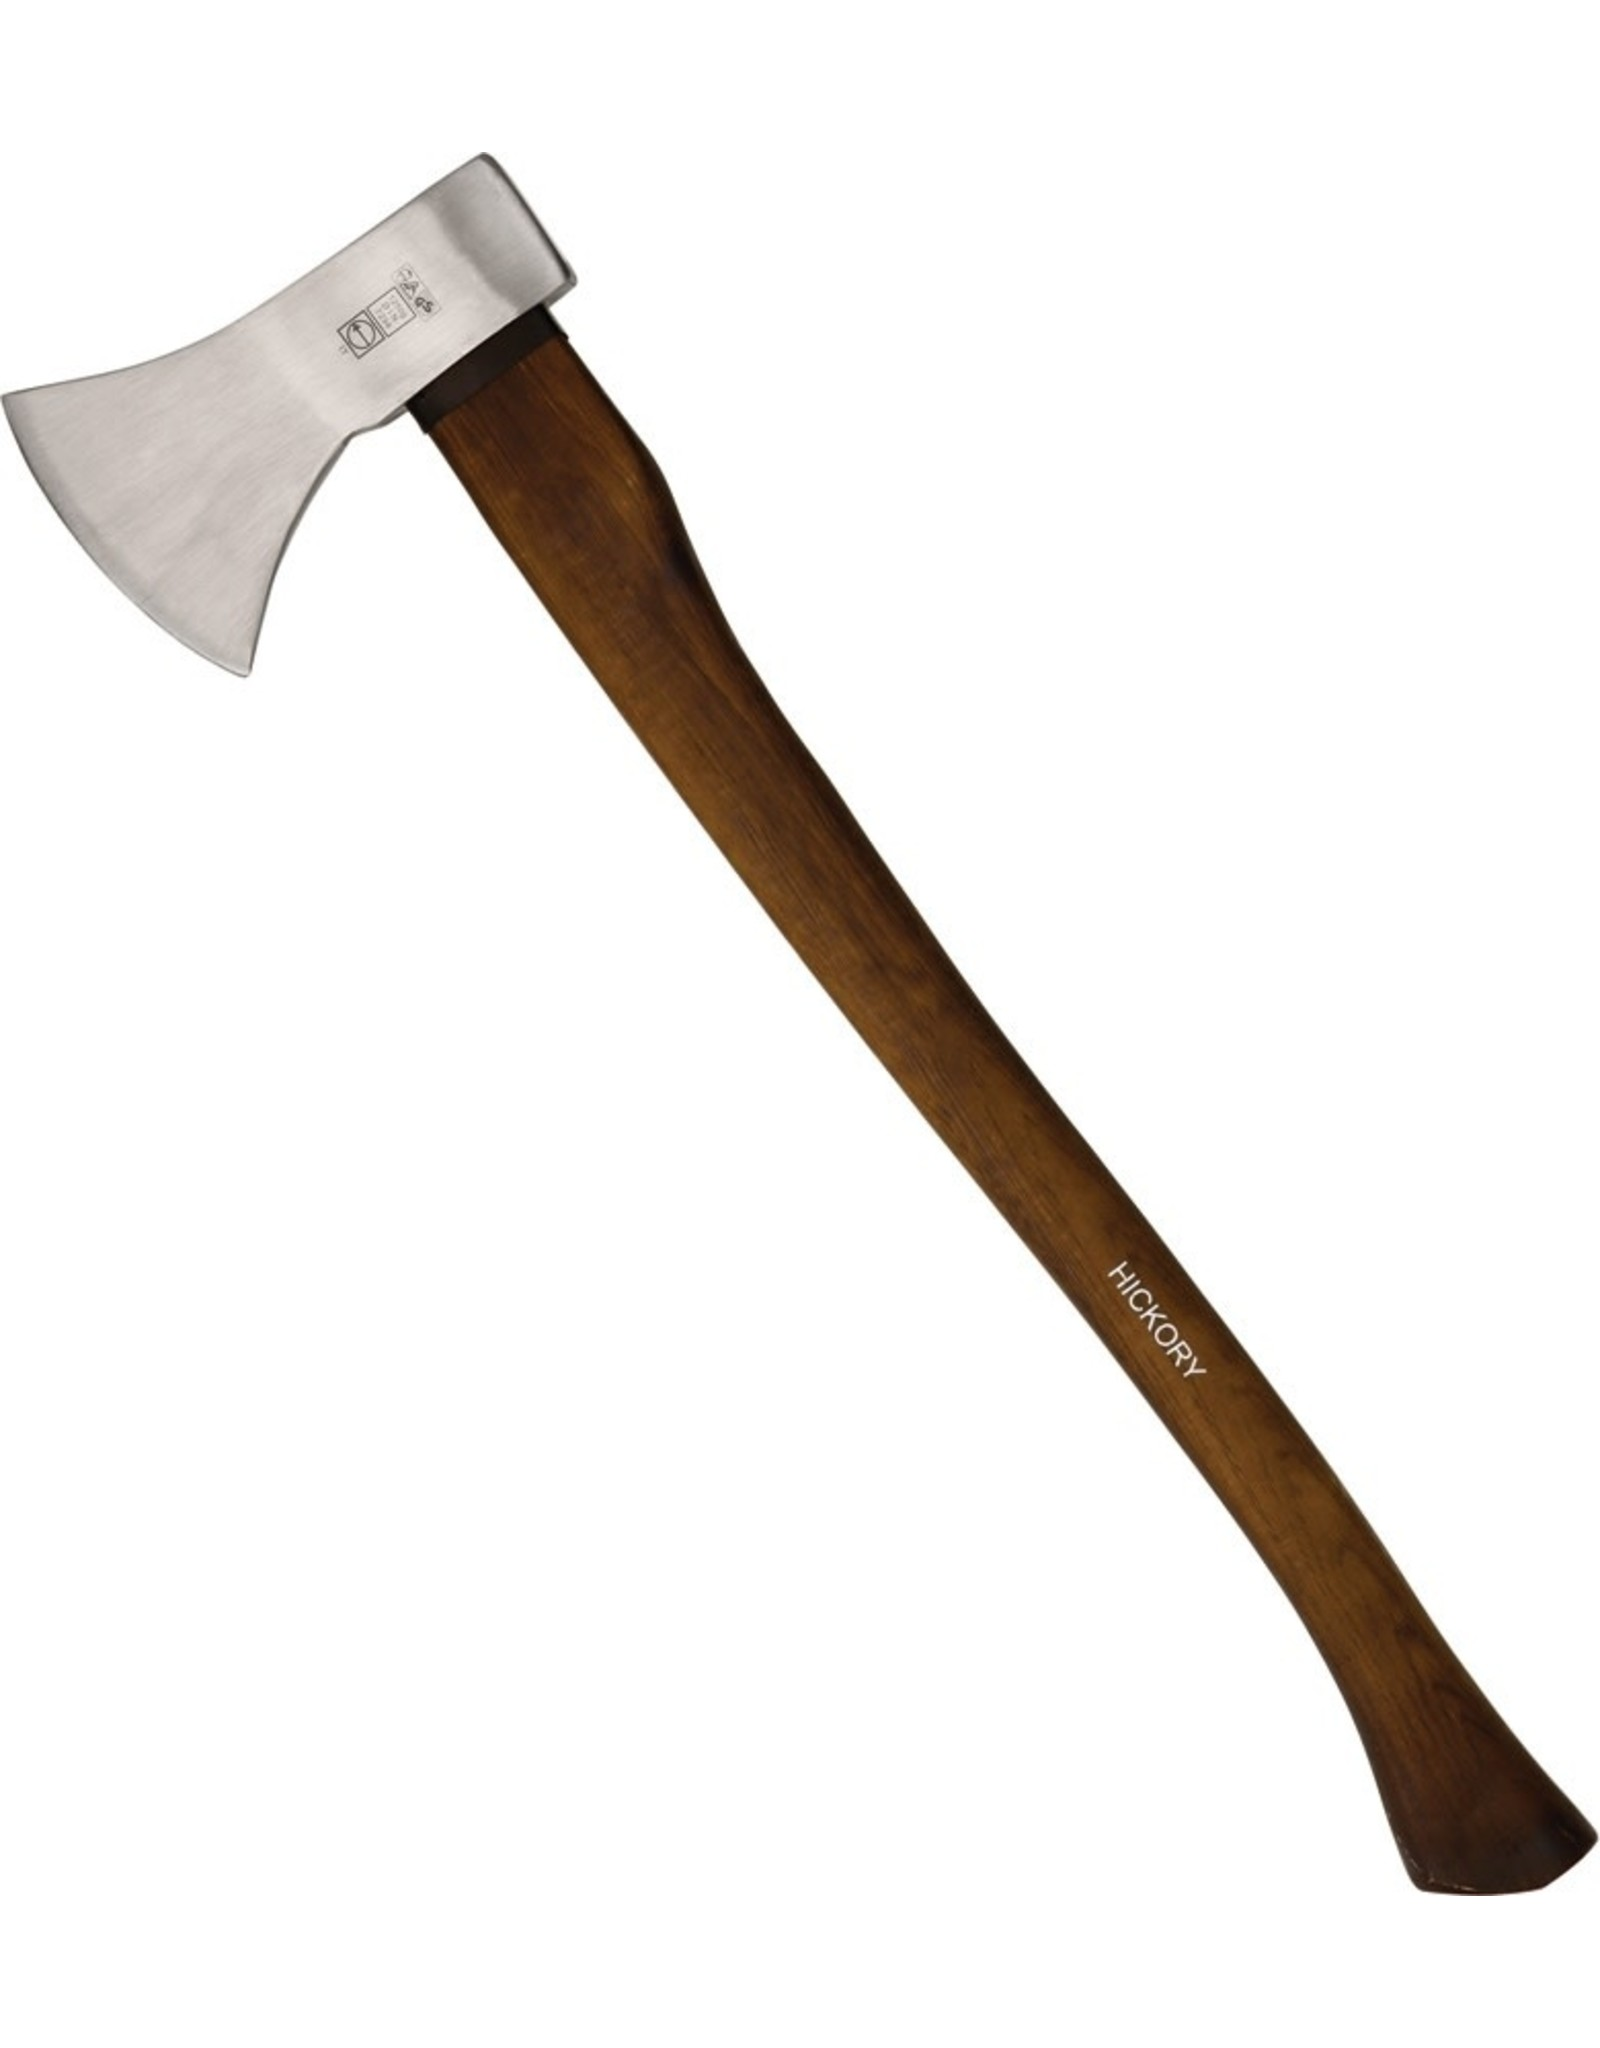 Ruthe Axe w/ Hickory Handle